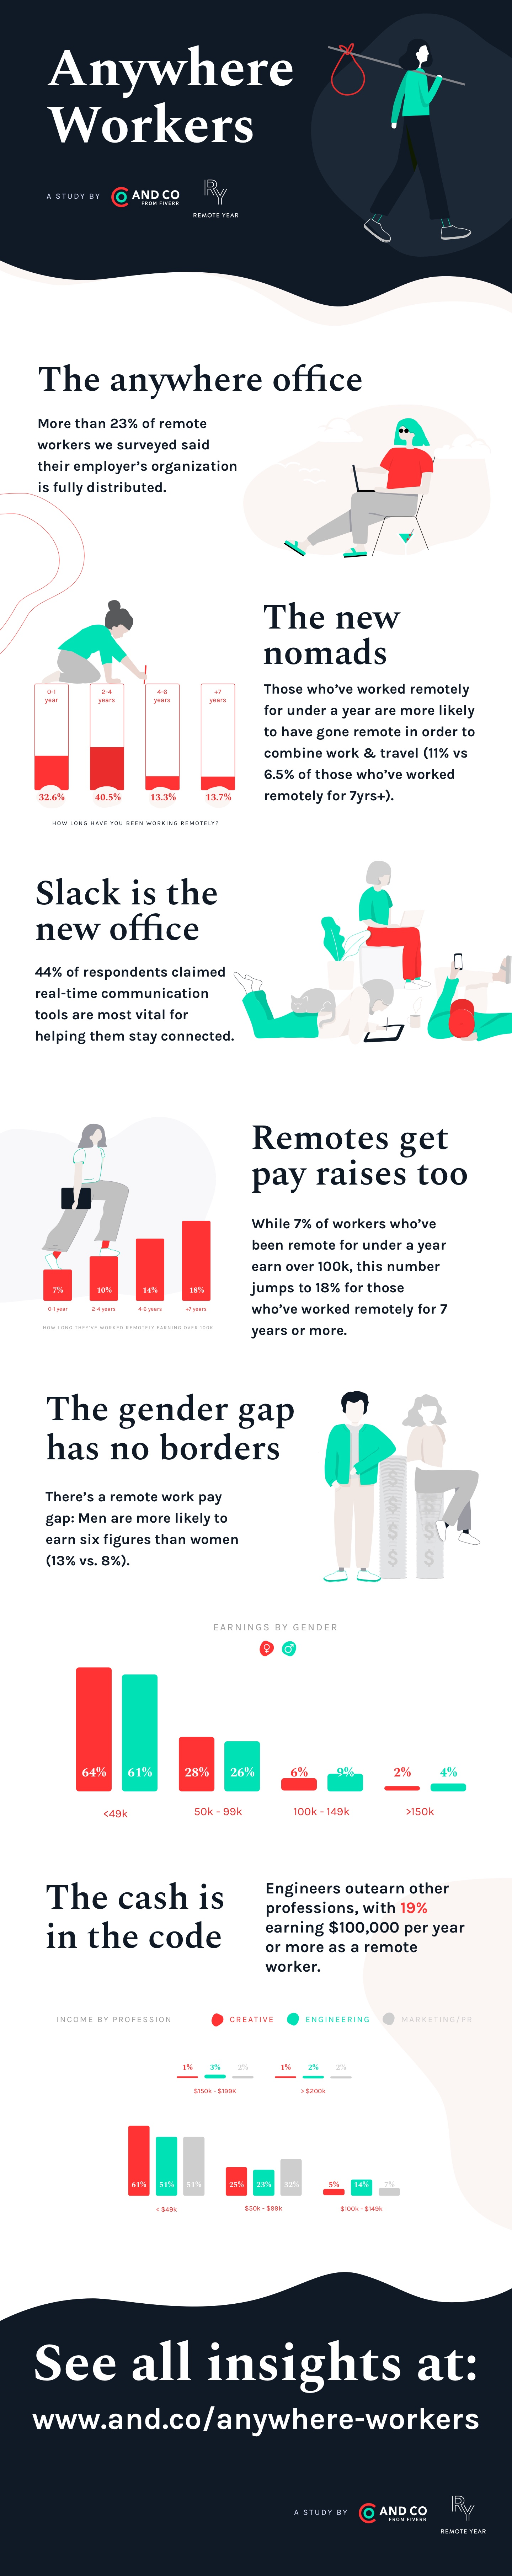 Anywhere Workers Infographic